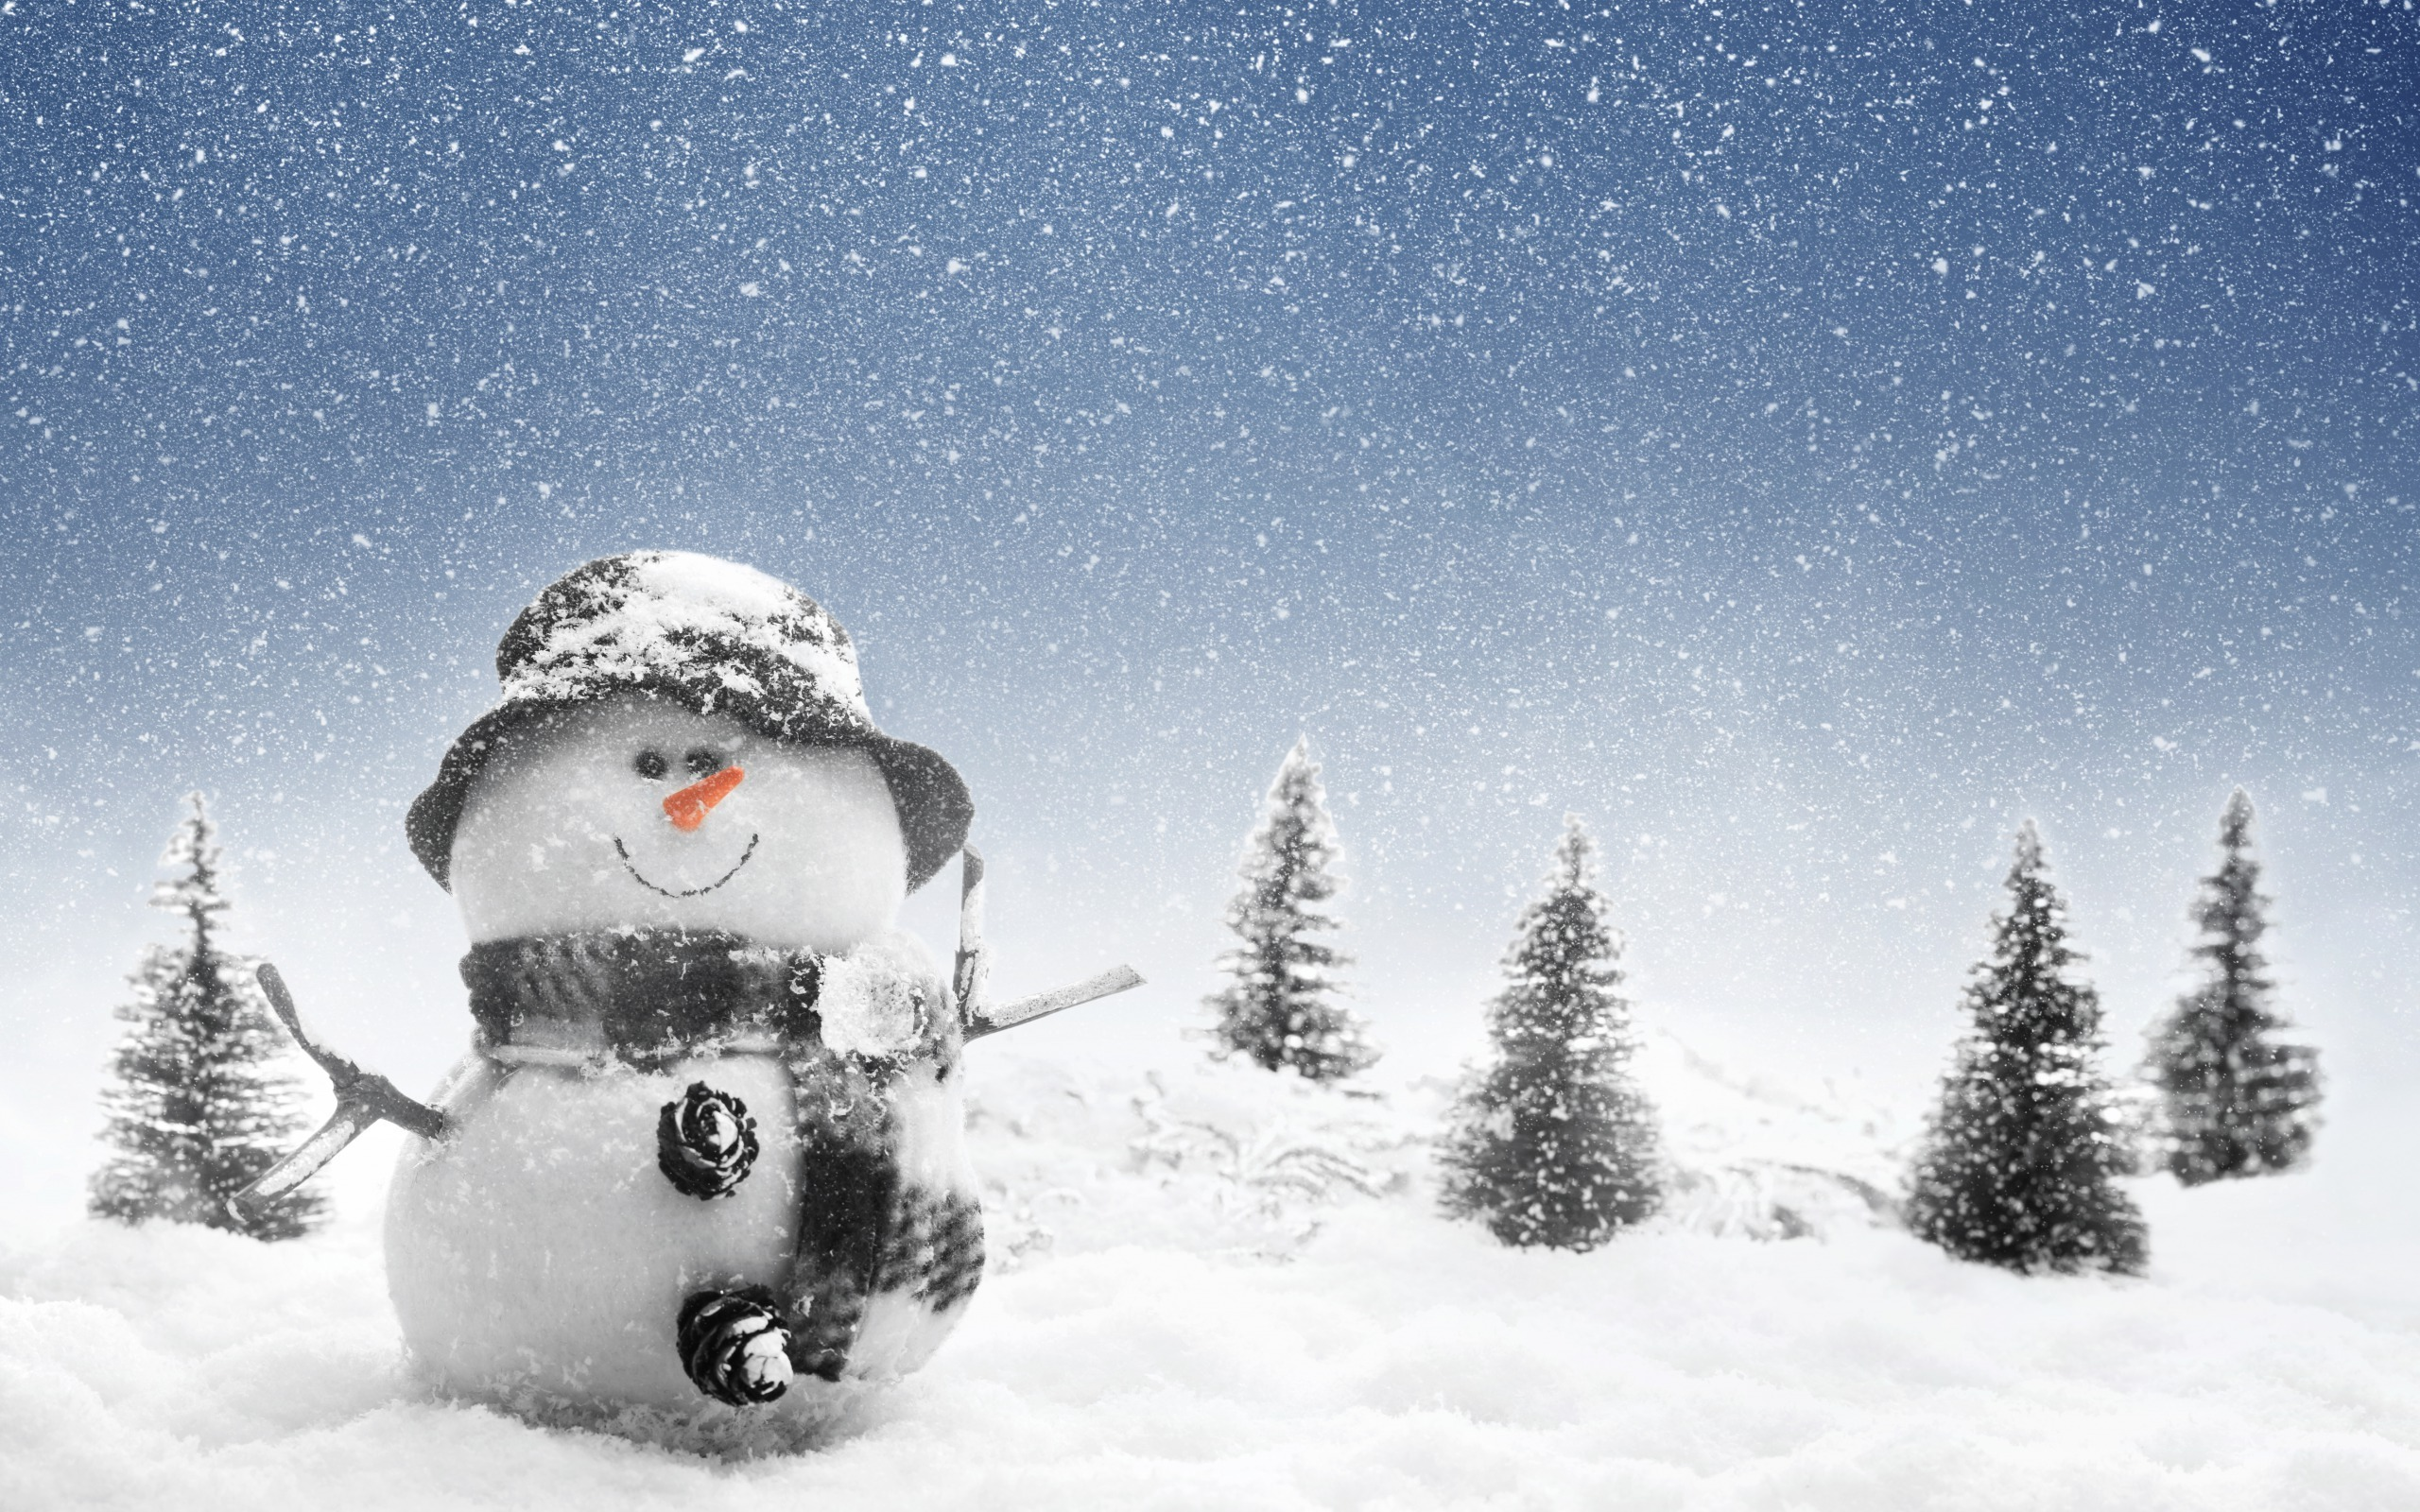 Winter Christmas Images Is Cool Wallpapers